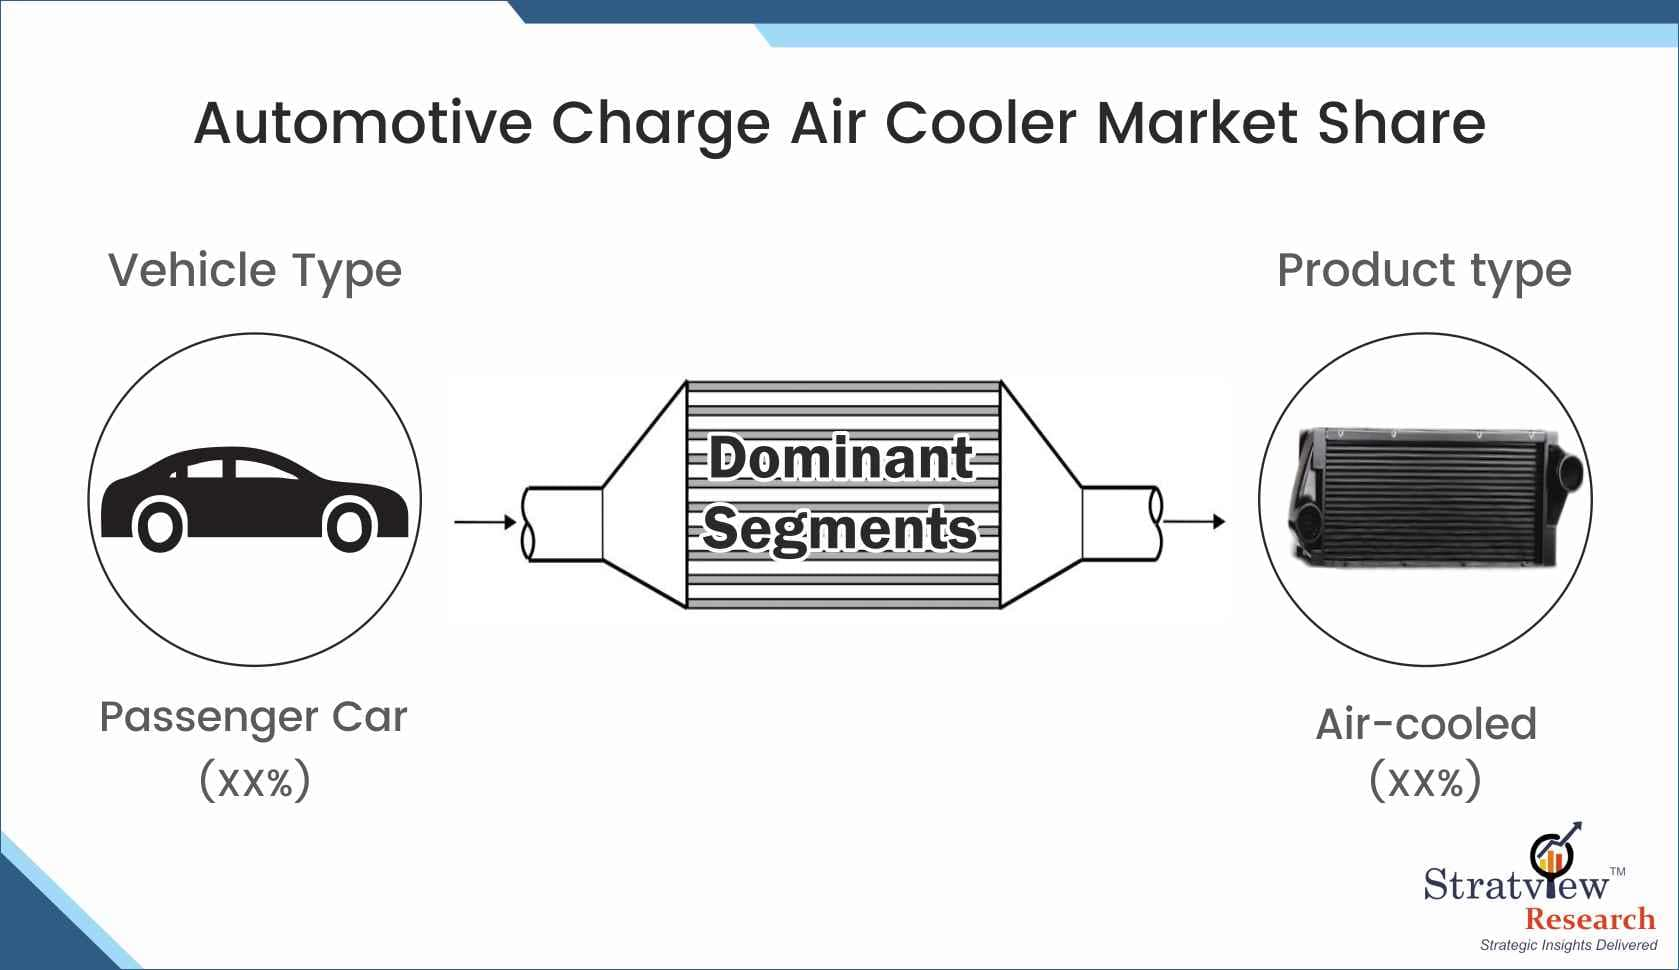 Automotive Charge Air Cooler Market Share